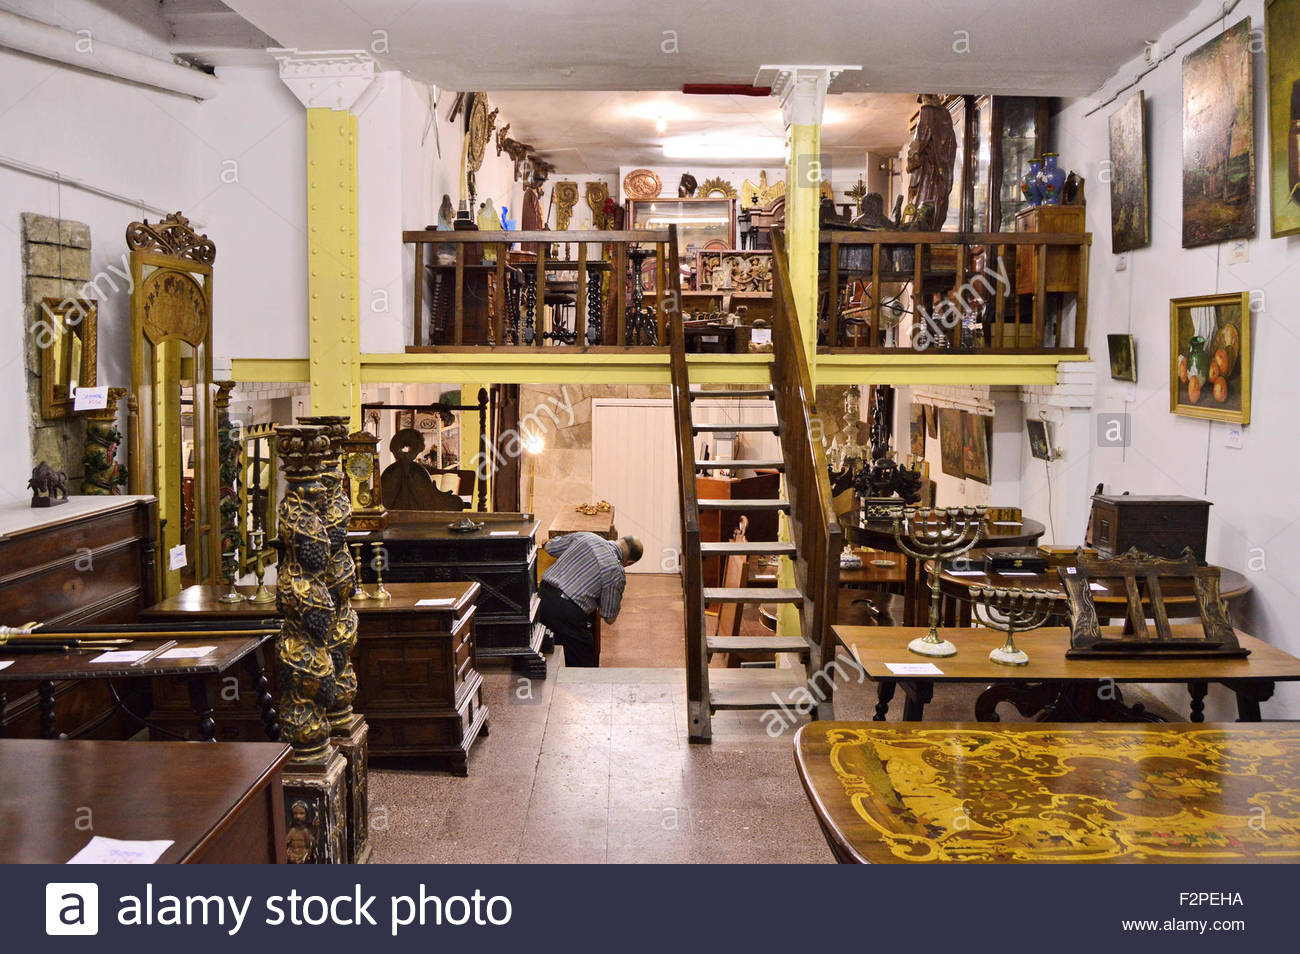 Antique Furniture Portland  Monticello Antique Marketplace Ireland | Retro  Furniture Store | 2005 08 13 016.tif ...